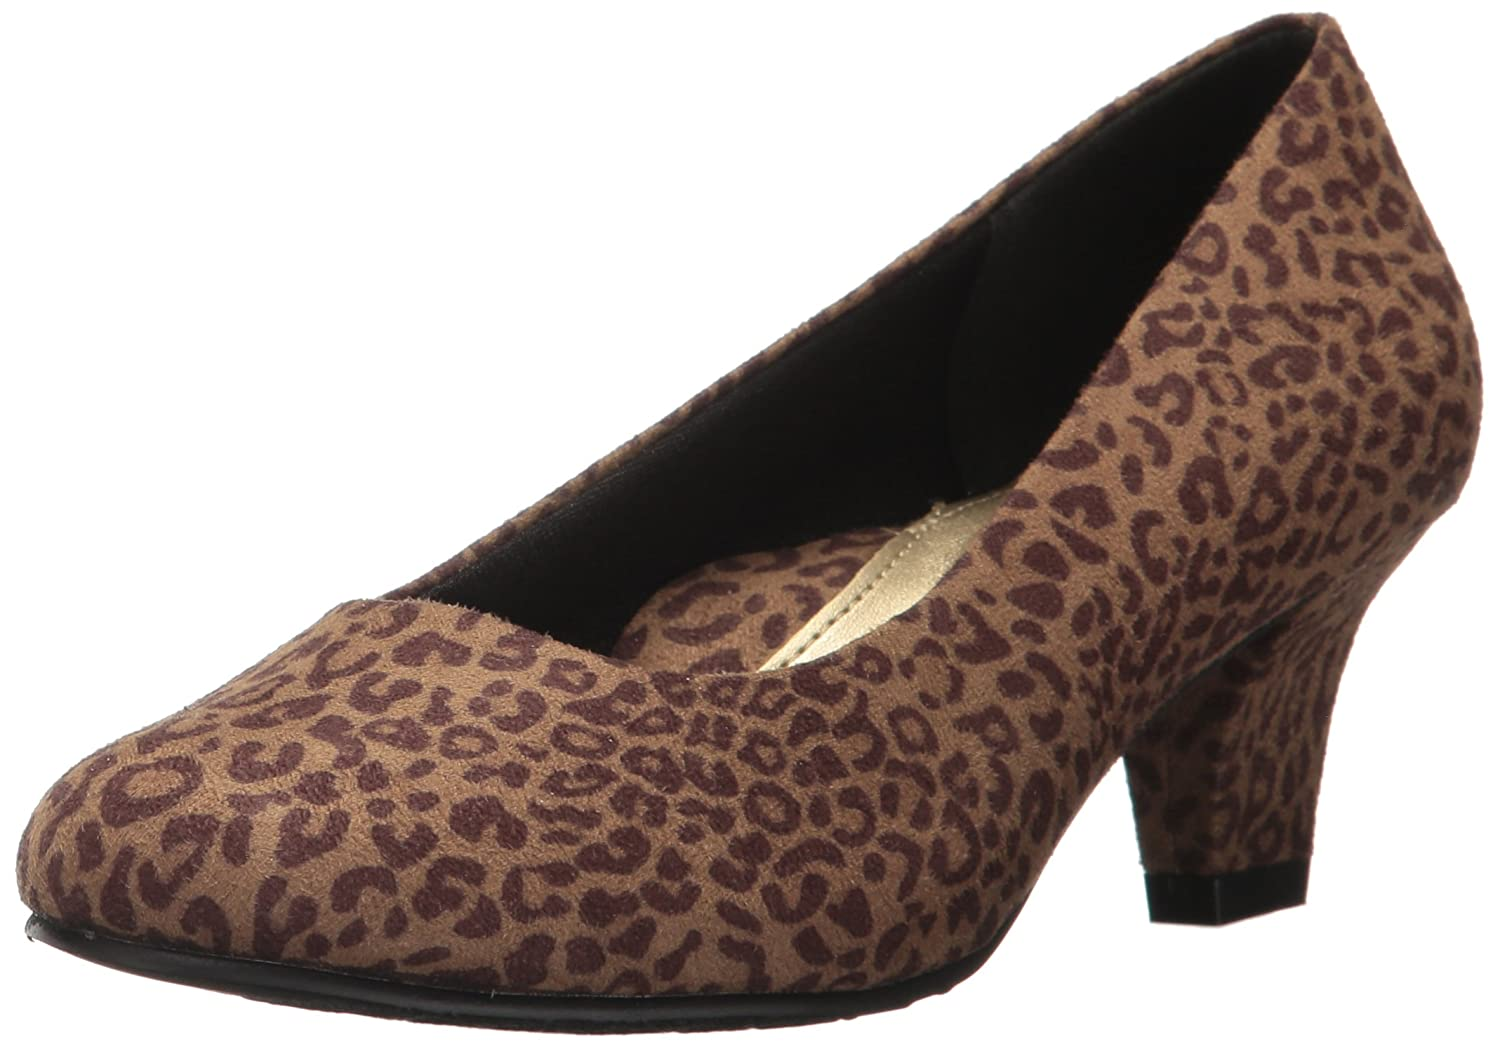 Hush Puppies Women's Gail 6 Shoes B01MTC630Y 6 Gail W US|Tan Leopard 10c2e1